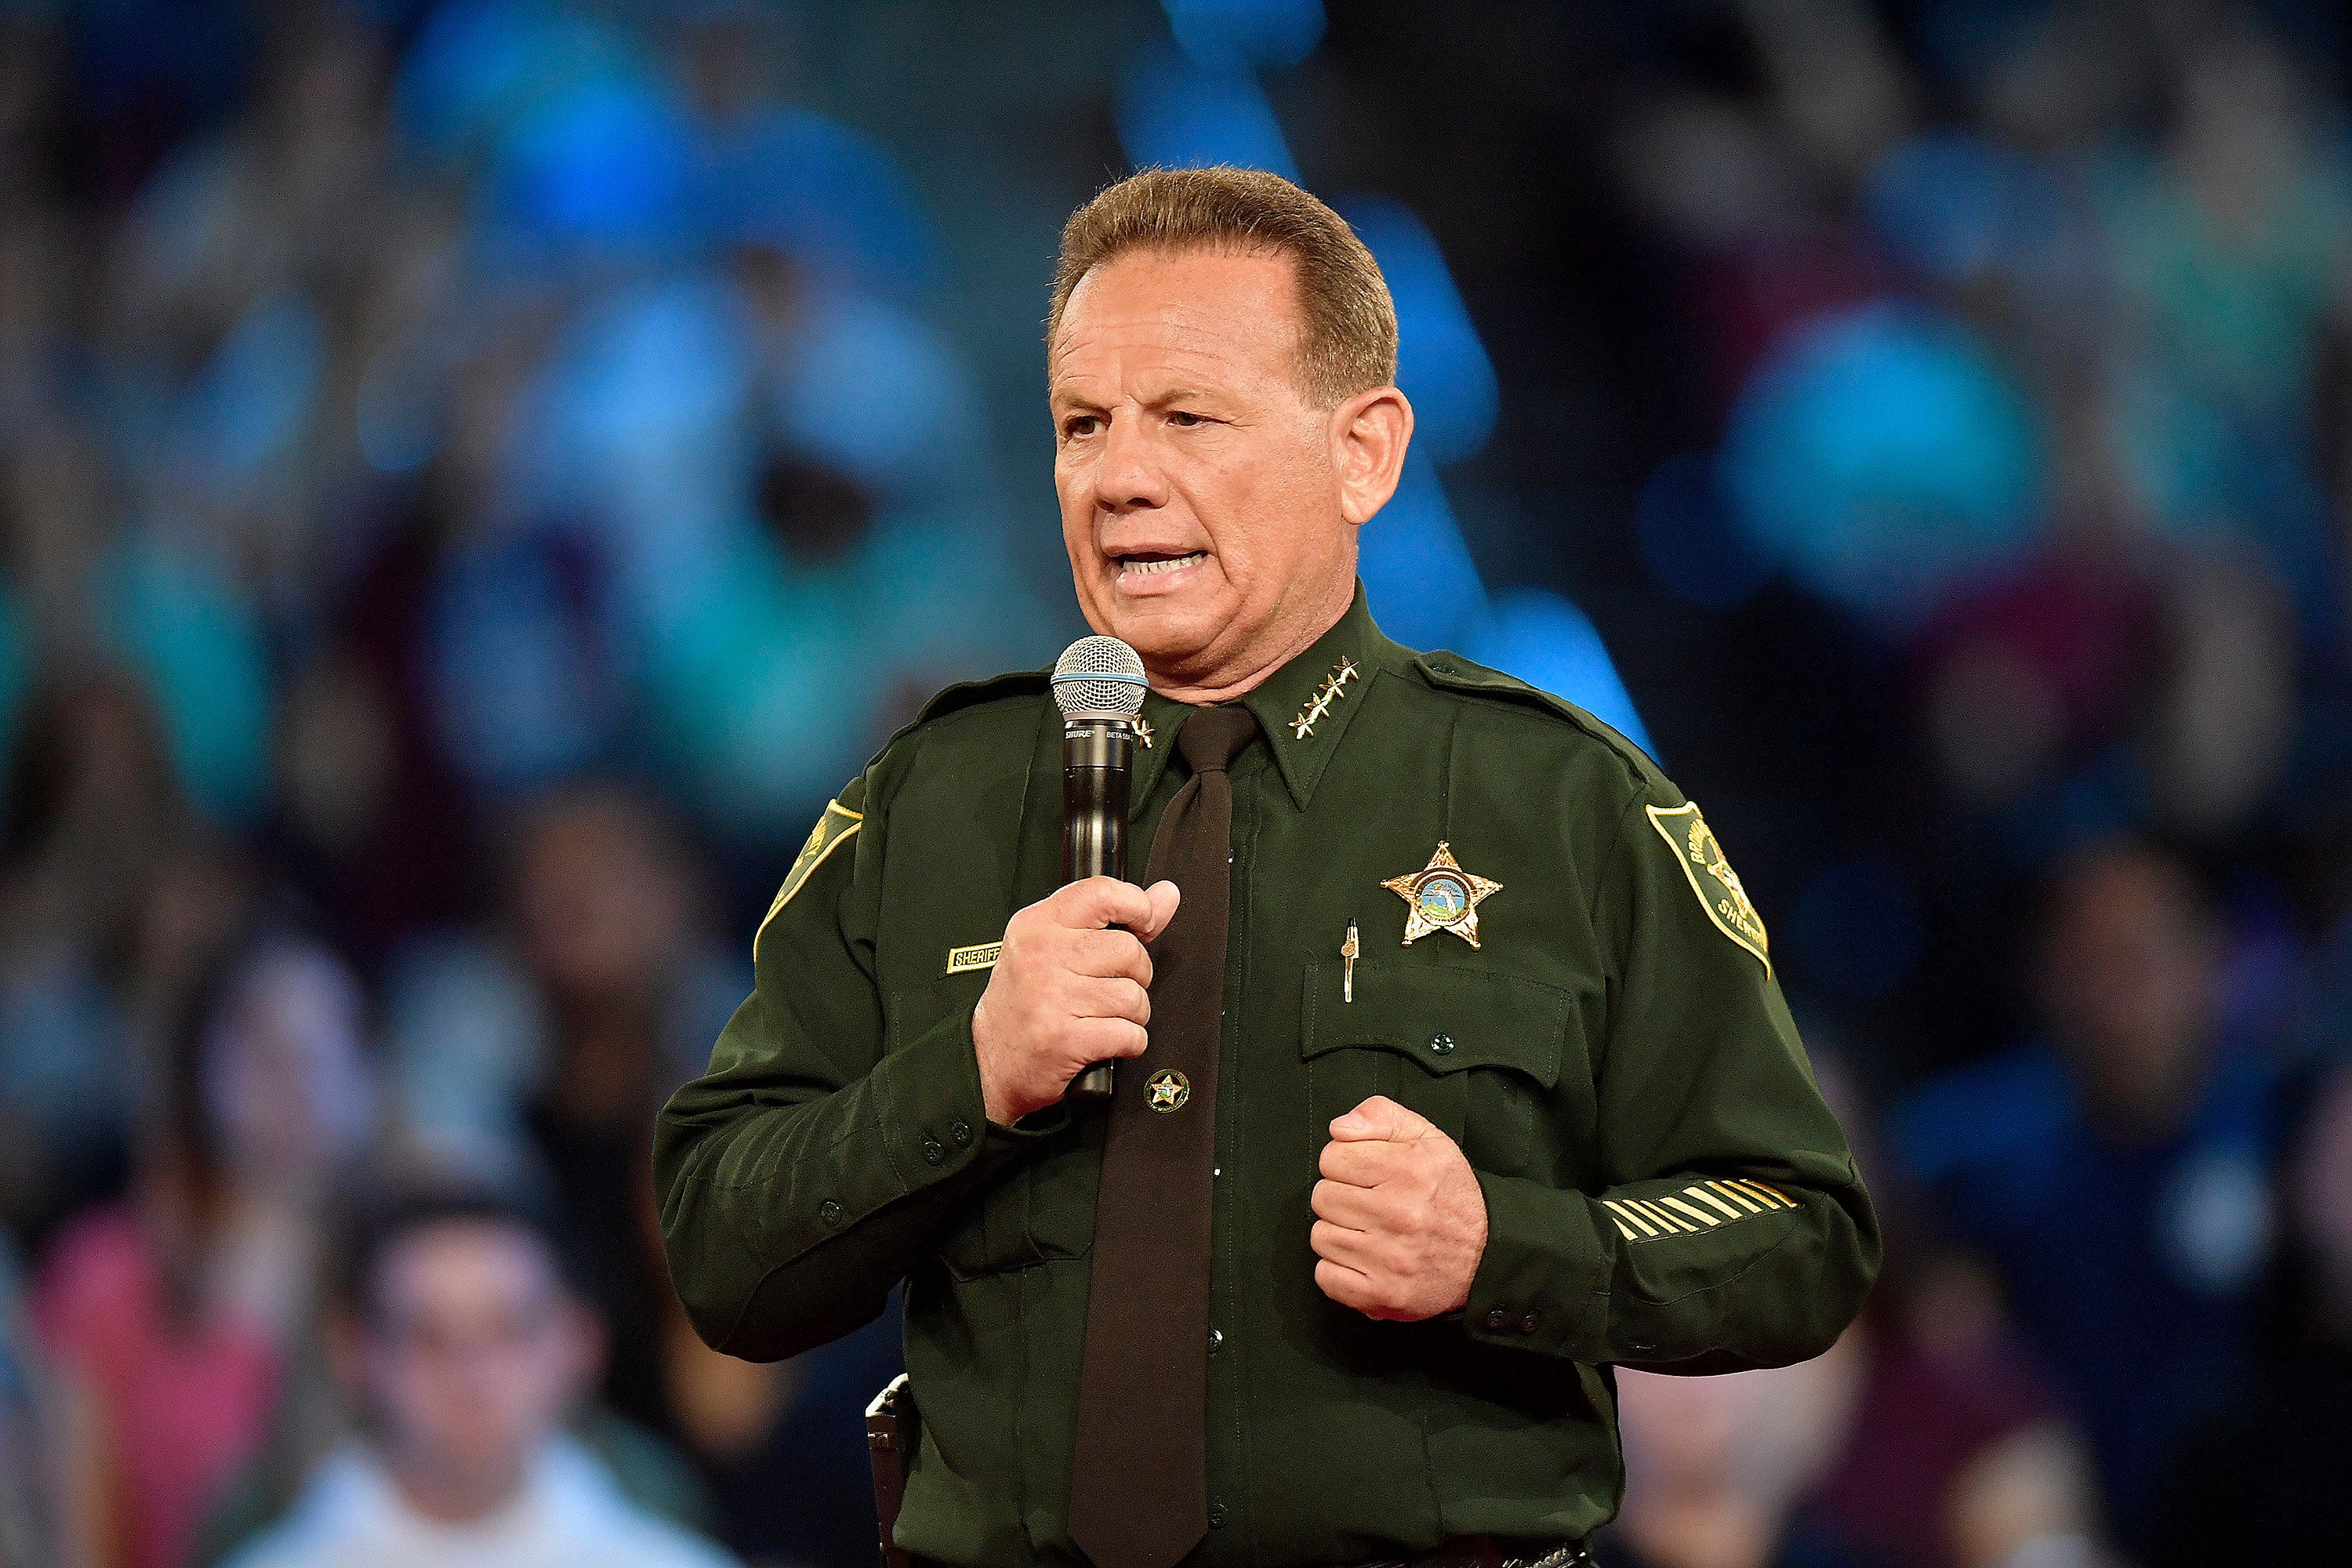 Florida House Republicans Demand Sheriff's Ouster Over Parkland Shooting Response